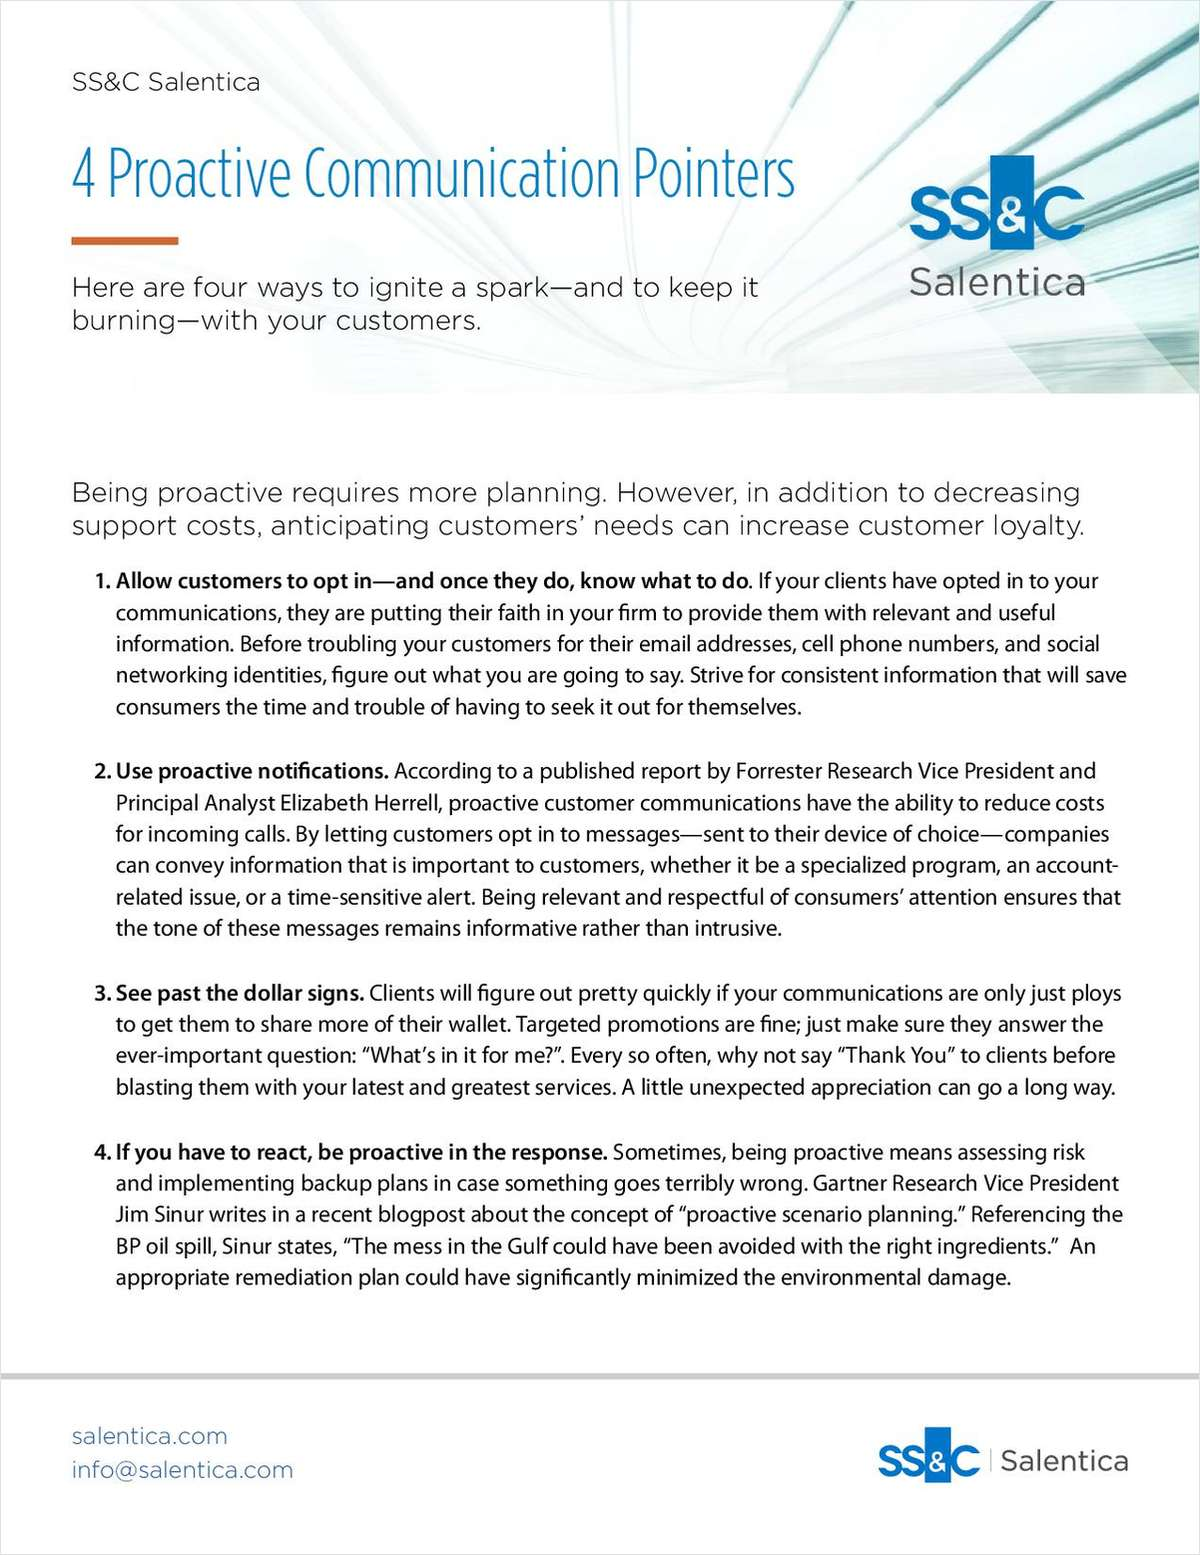 4 Proactive Communication Pointers